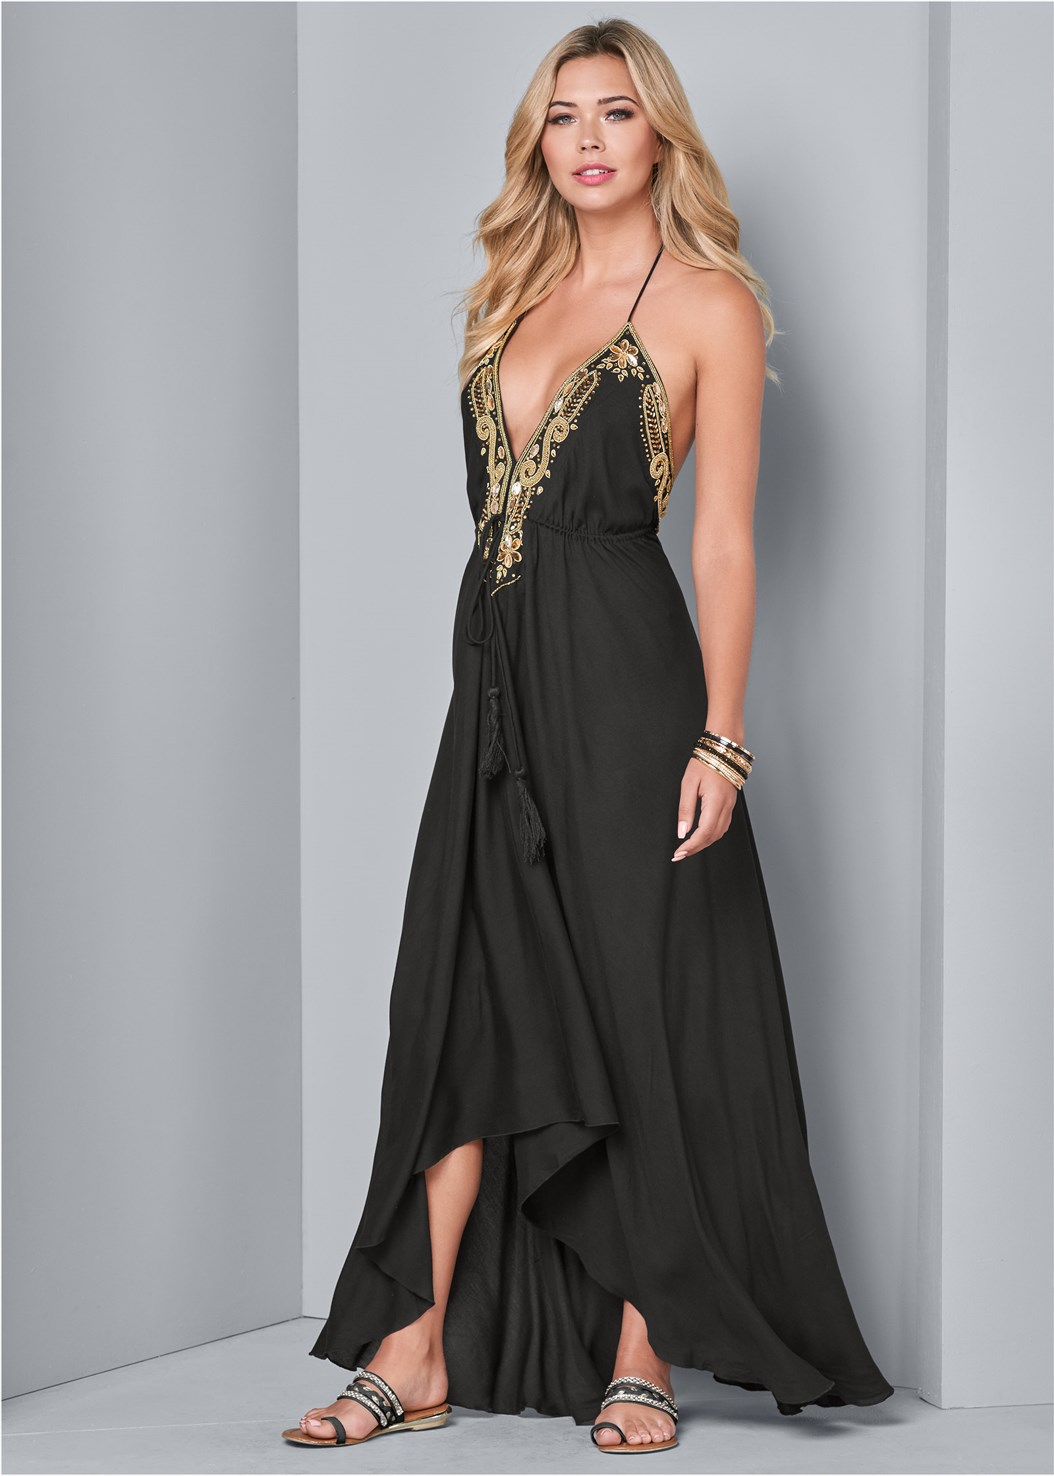 Embellished Trim Maxi Dress,Cleavage Enhancers,Strappy Toe Ring Sandals,Embellished Heels,Oversized Tassel Earrings,Stud Detail Crossbody